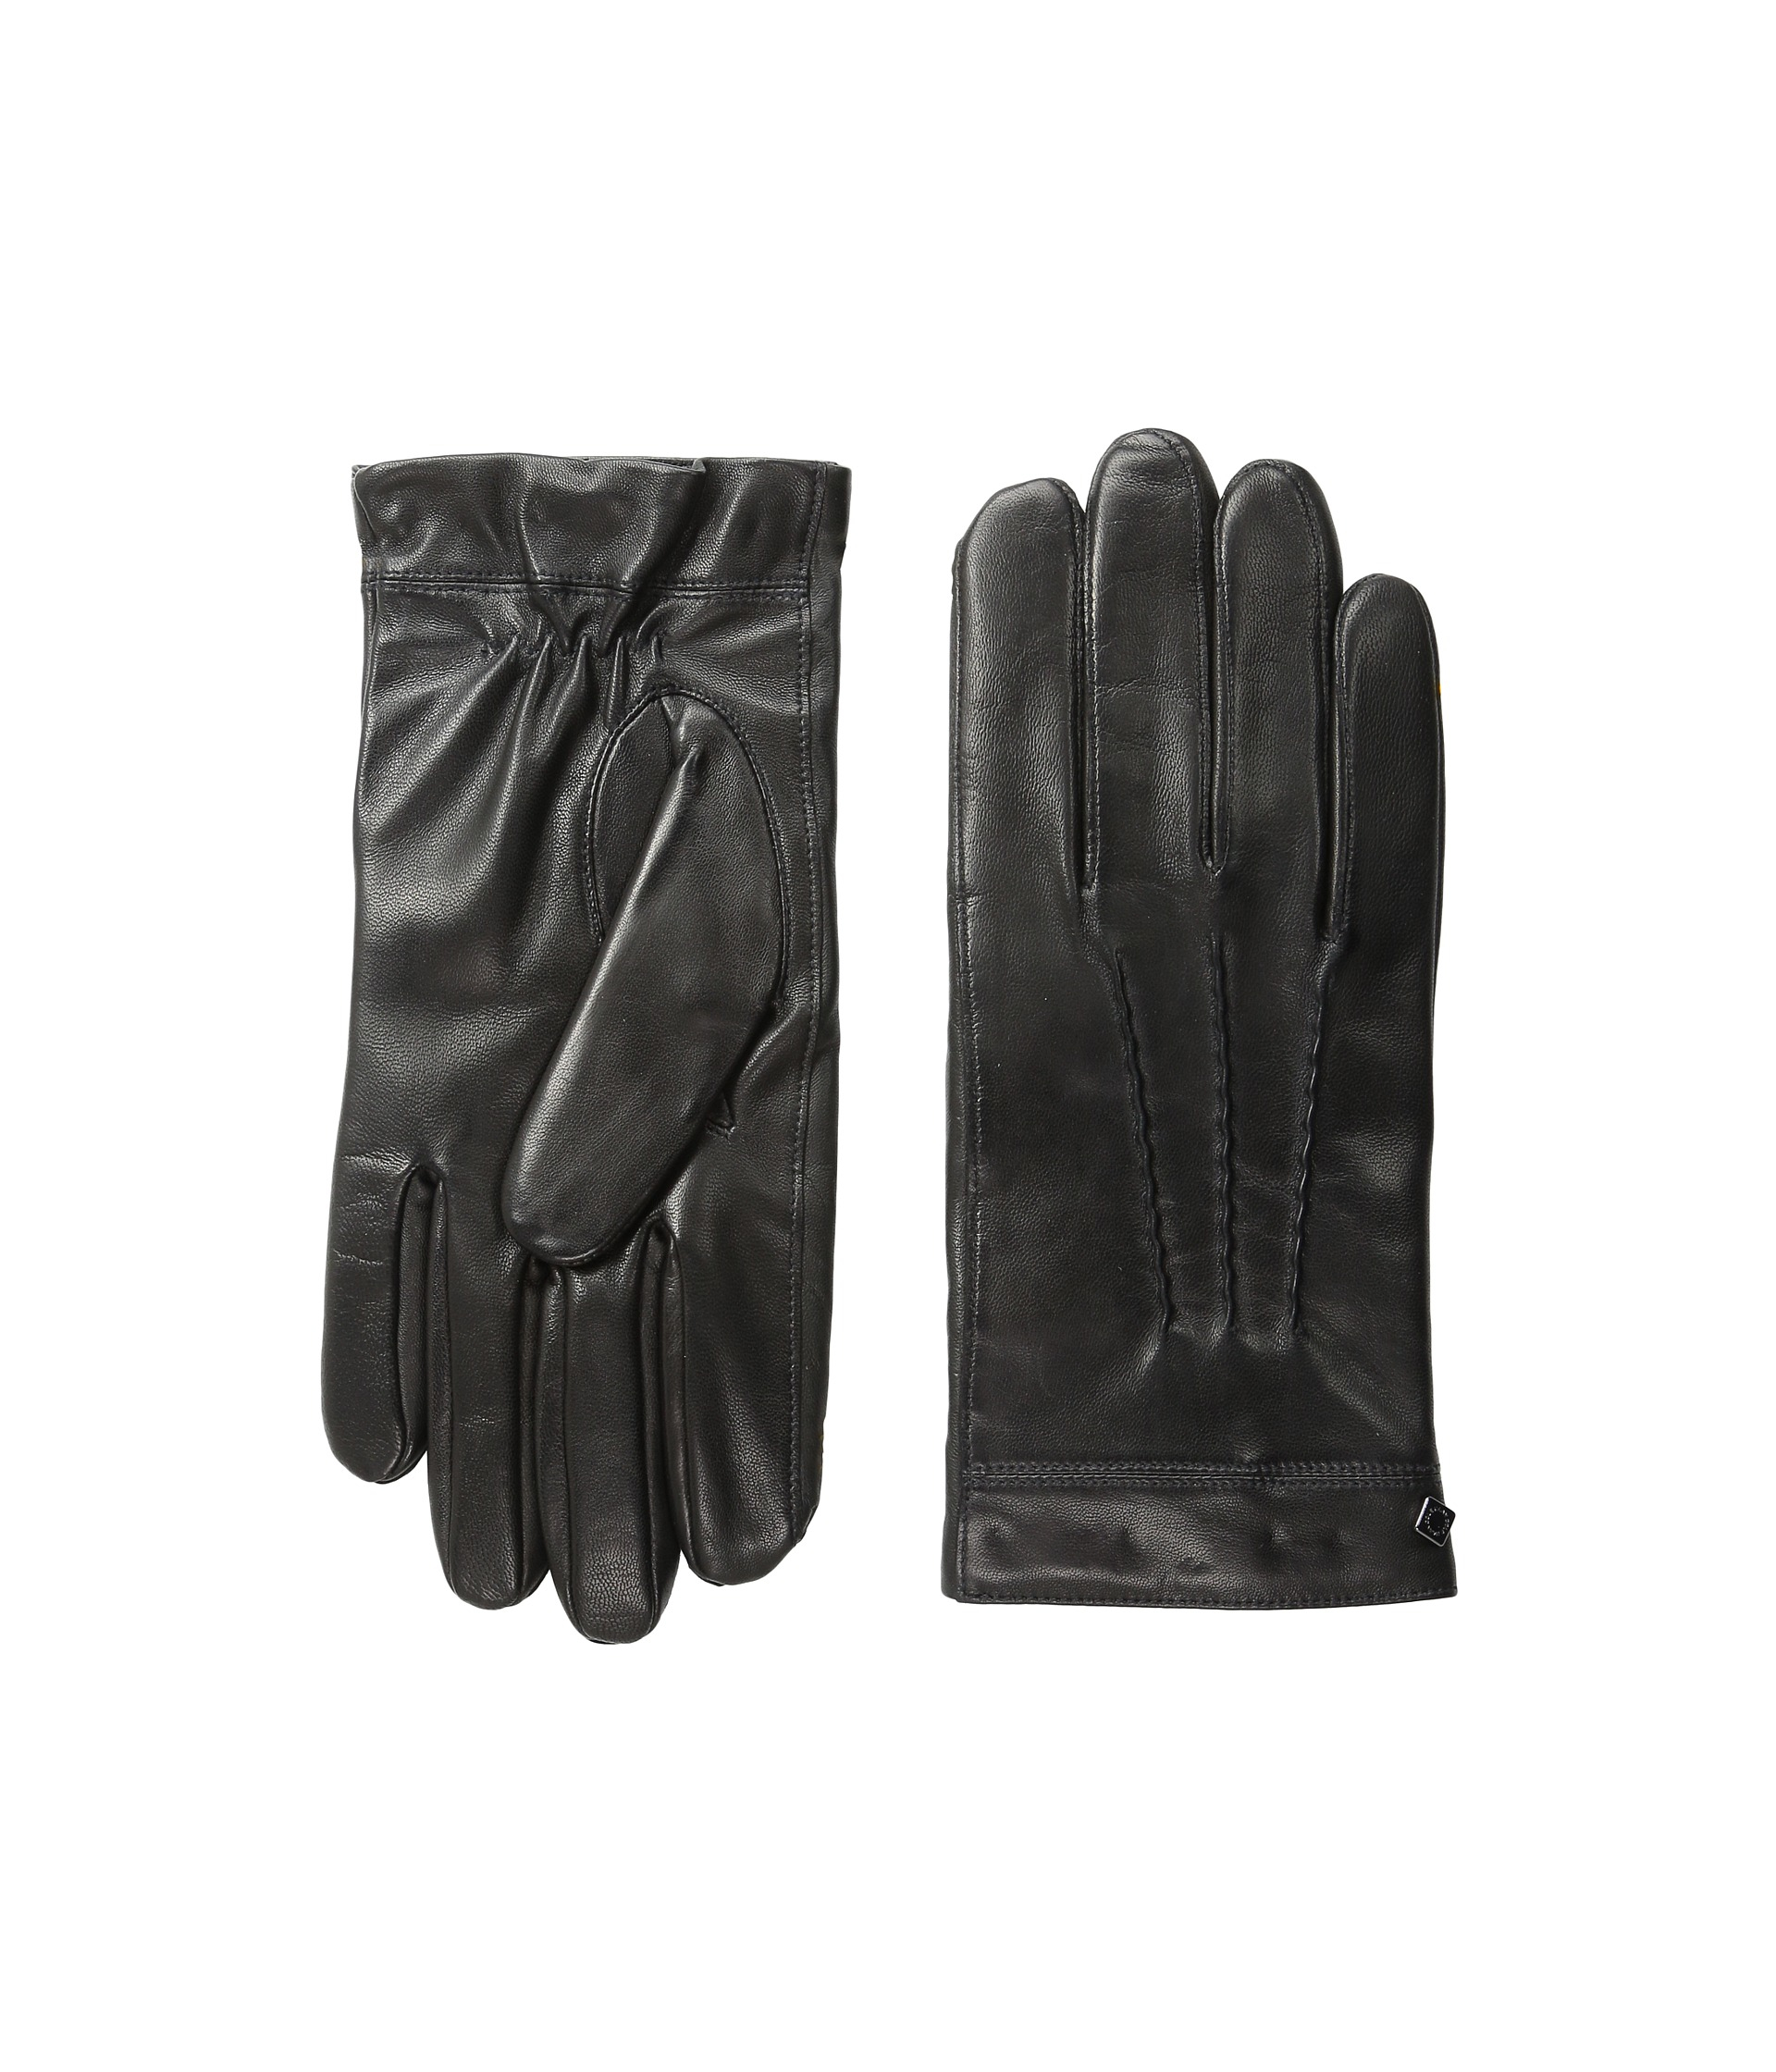 Cole haan black leather gloves - Gallery Previously Sold At Zappos Leather Gloves